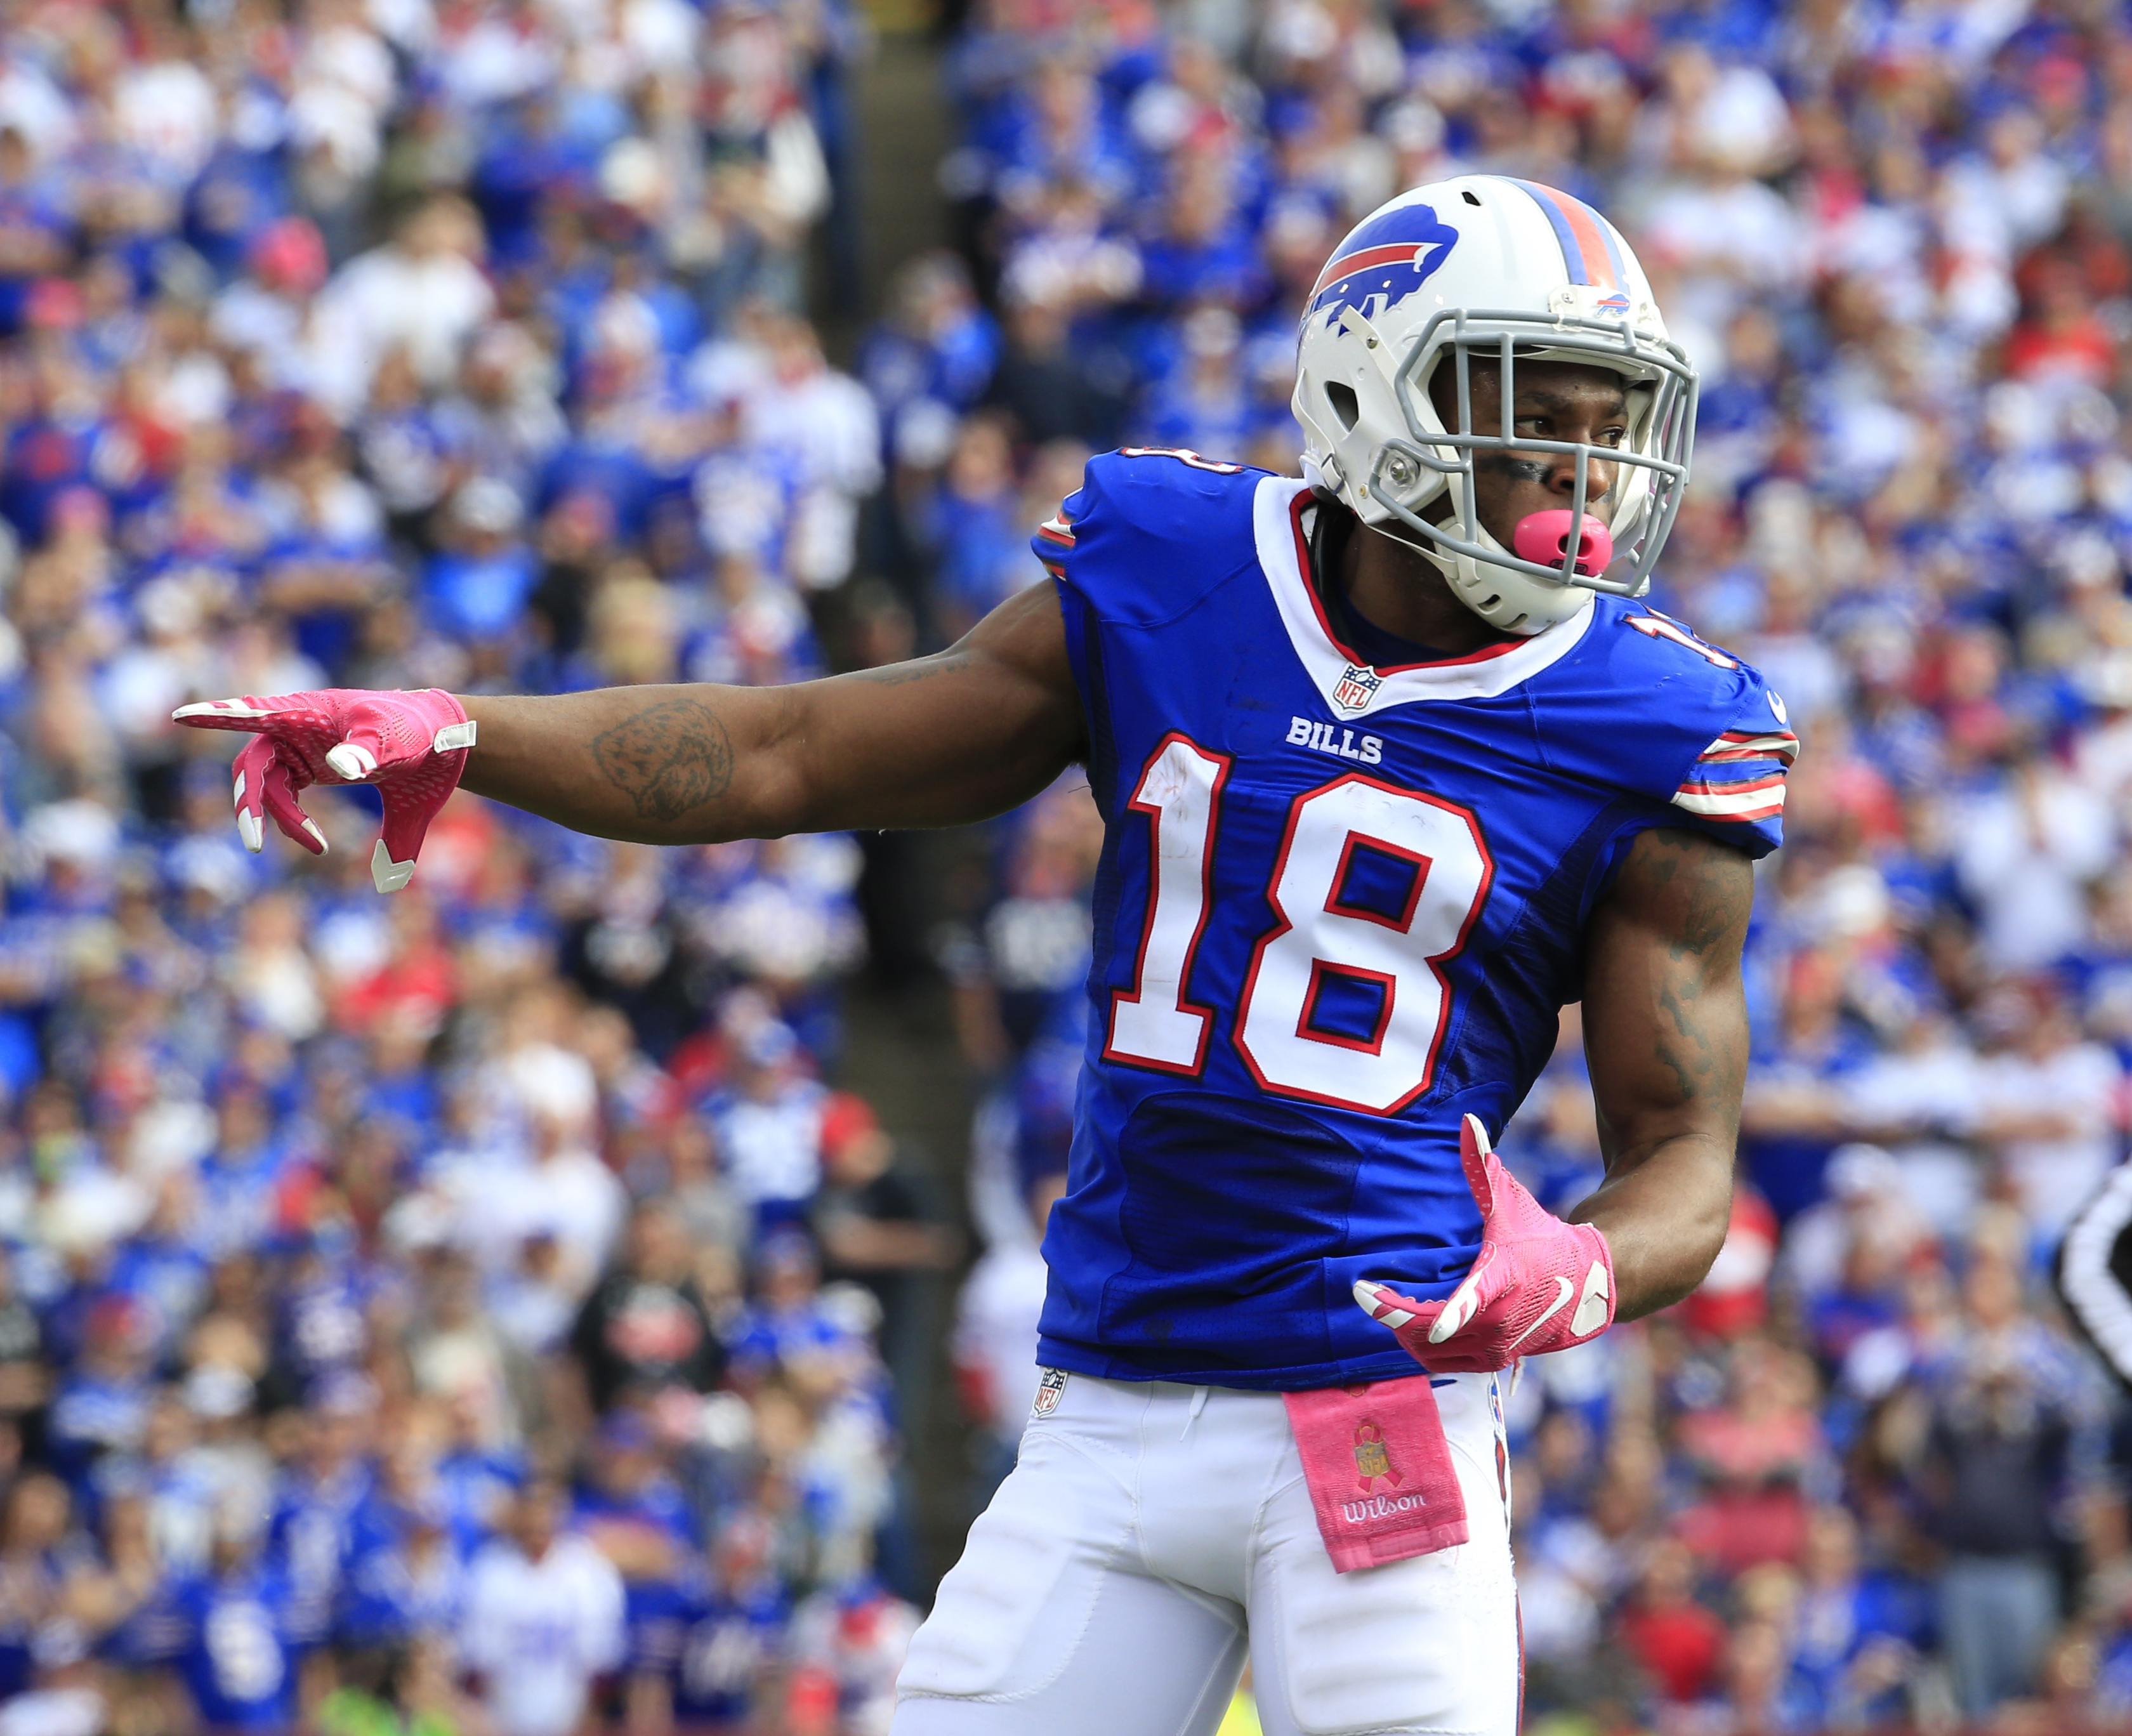 Buffalo Bills wide receiver Percy Harvin runs into position against the New York Giants during the second half of an NFL football game, Sunday, Oct. 4, 2015, in Orchard Park, N.Y. (AP Photo/Bill Wippert)